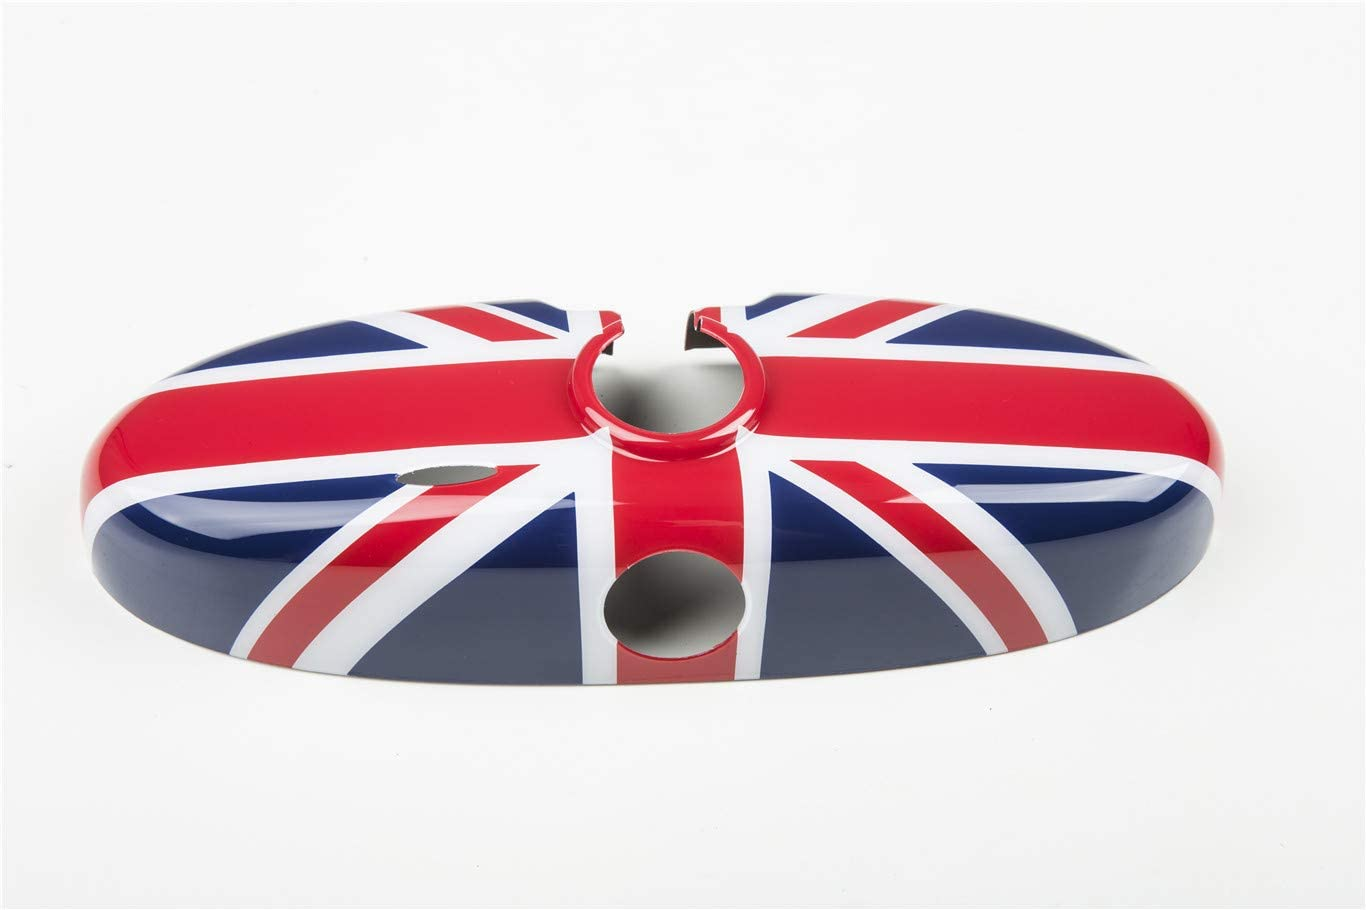 HDX Inner Rearview Room Mirror Cover Trim Cap ABS for Mini Cooper R55 Clubman R56 Hatchback R57 Covertible R58 Coupe R59 Roadster R60 Countryman R61 Paceman (Union Jack Blue)